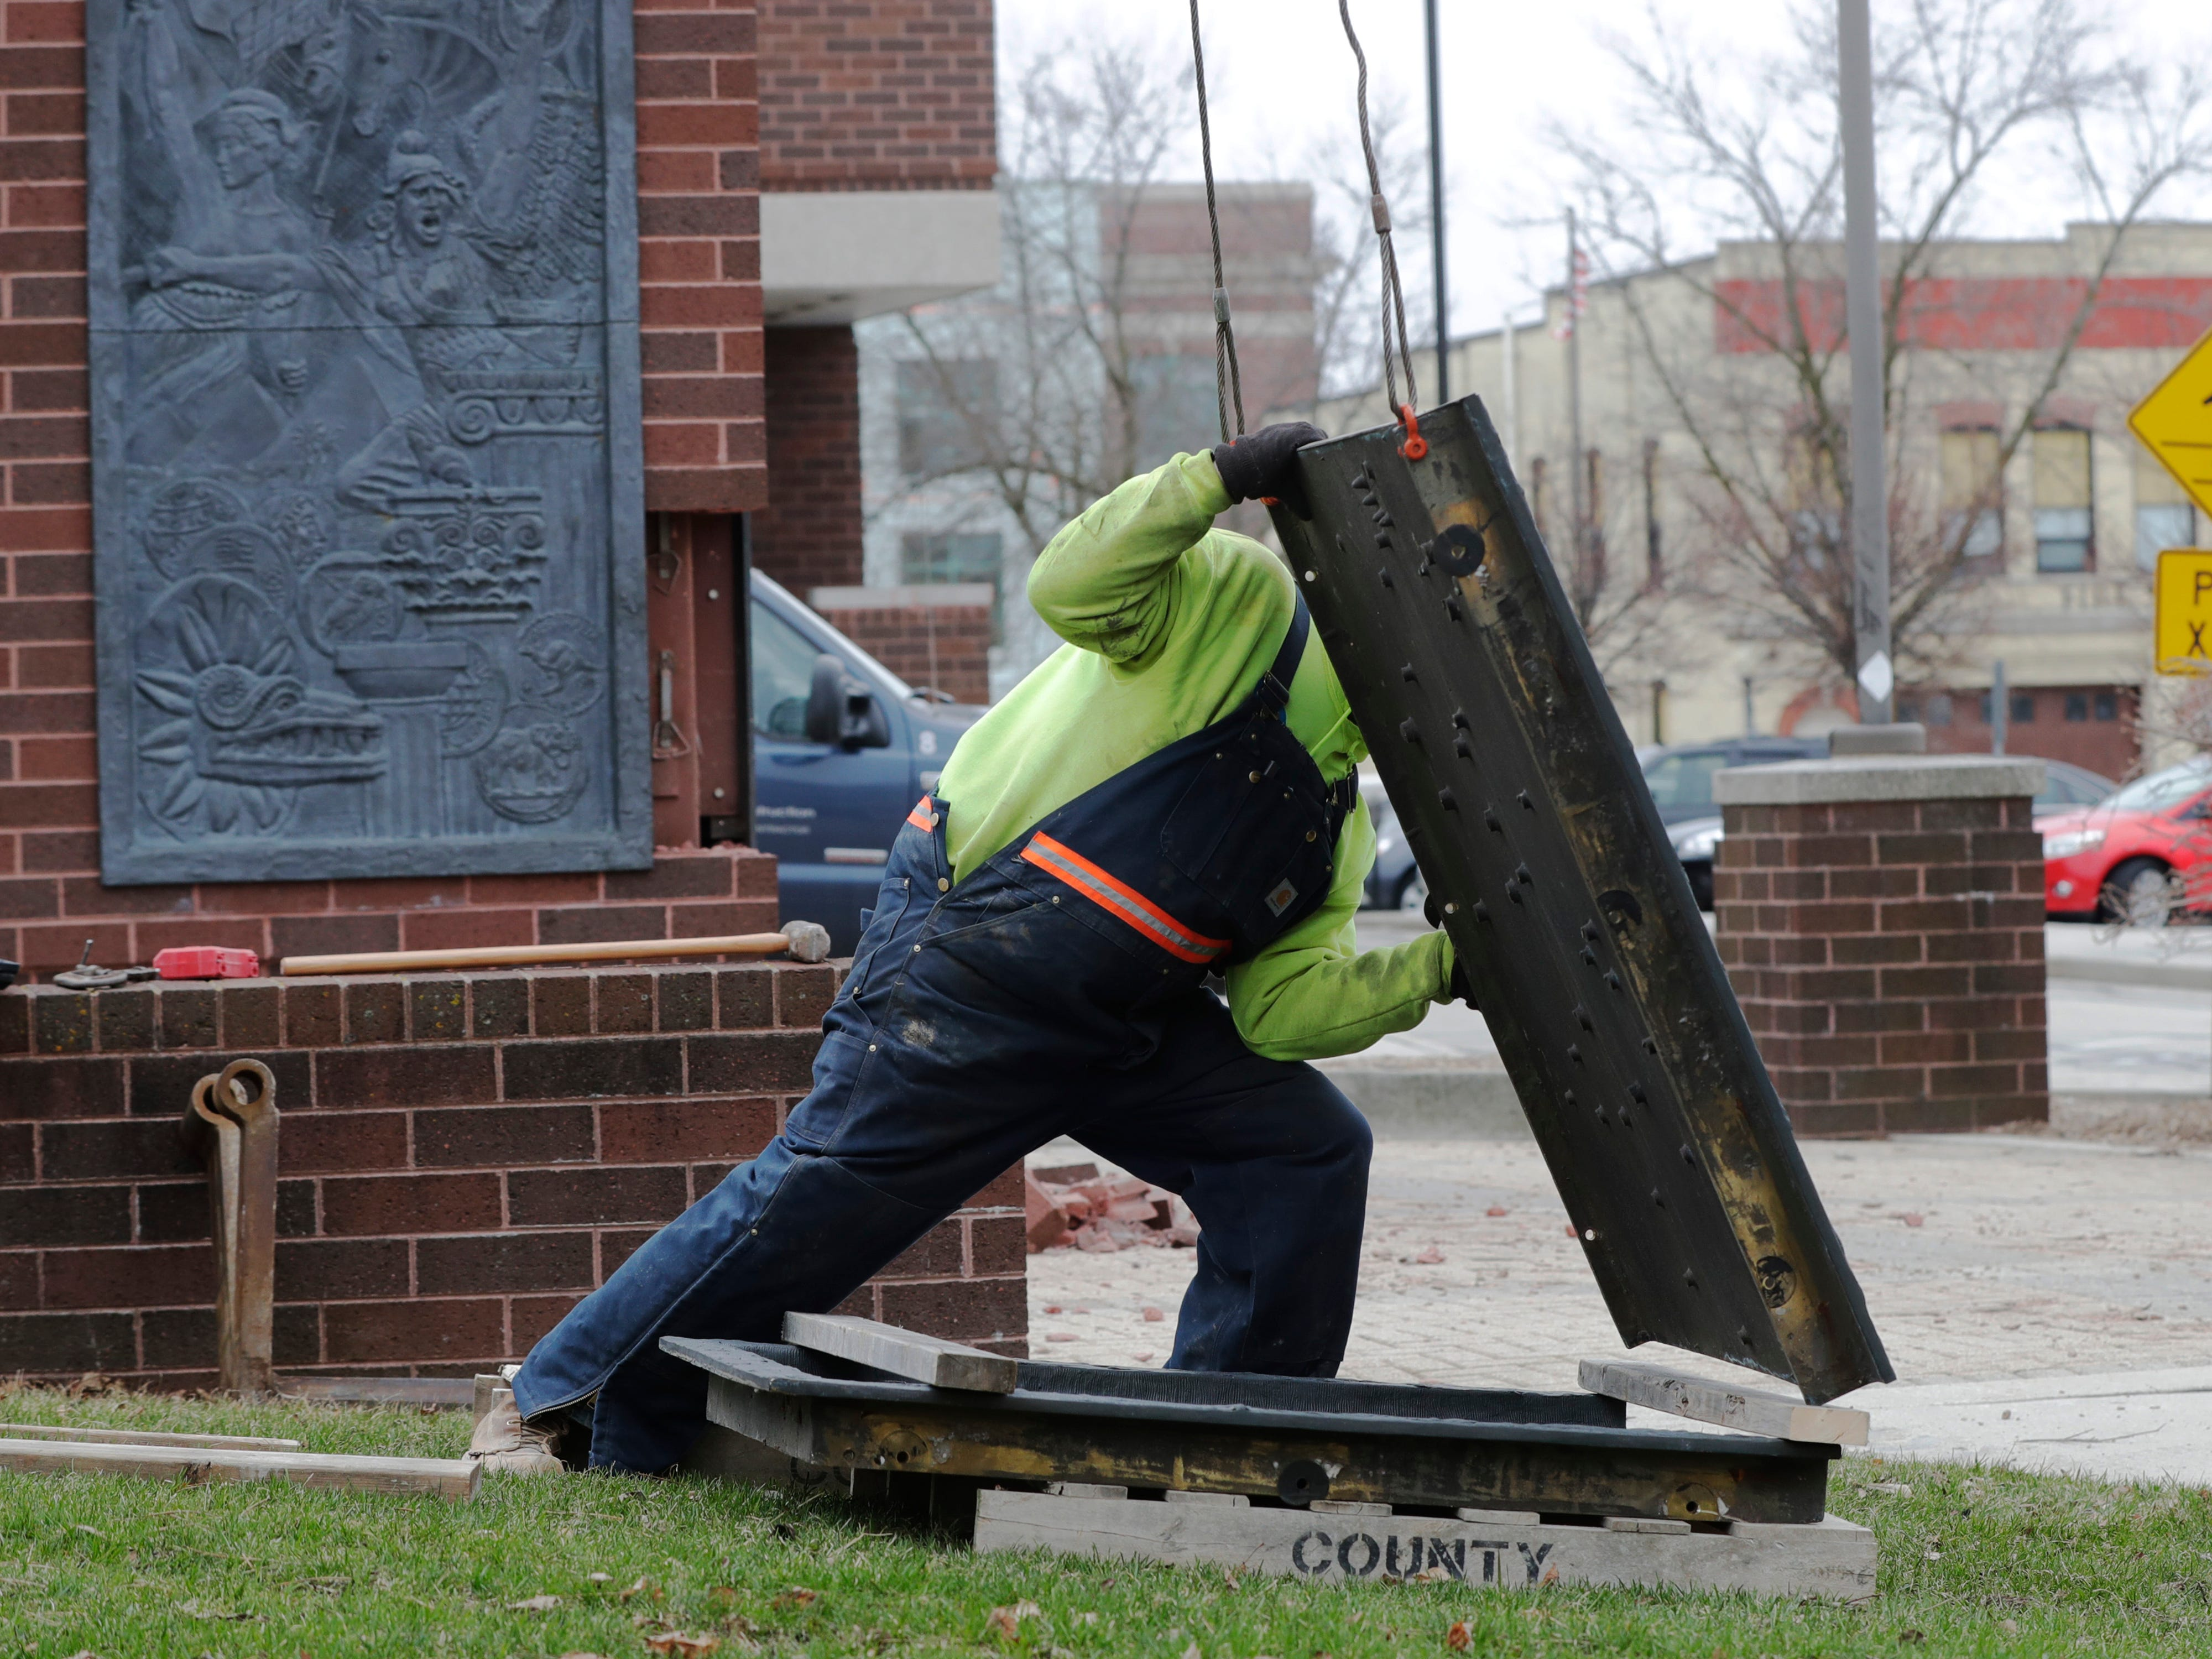 An employee from Koenig Construction steadies the bronze panel from the clock tower at Mead Public Library, Wednesday, April 10, 2019, in Sheboygan, Wis.